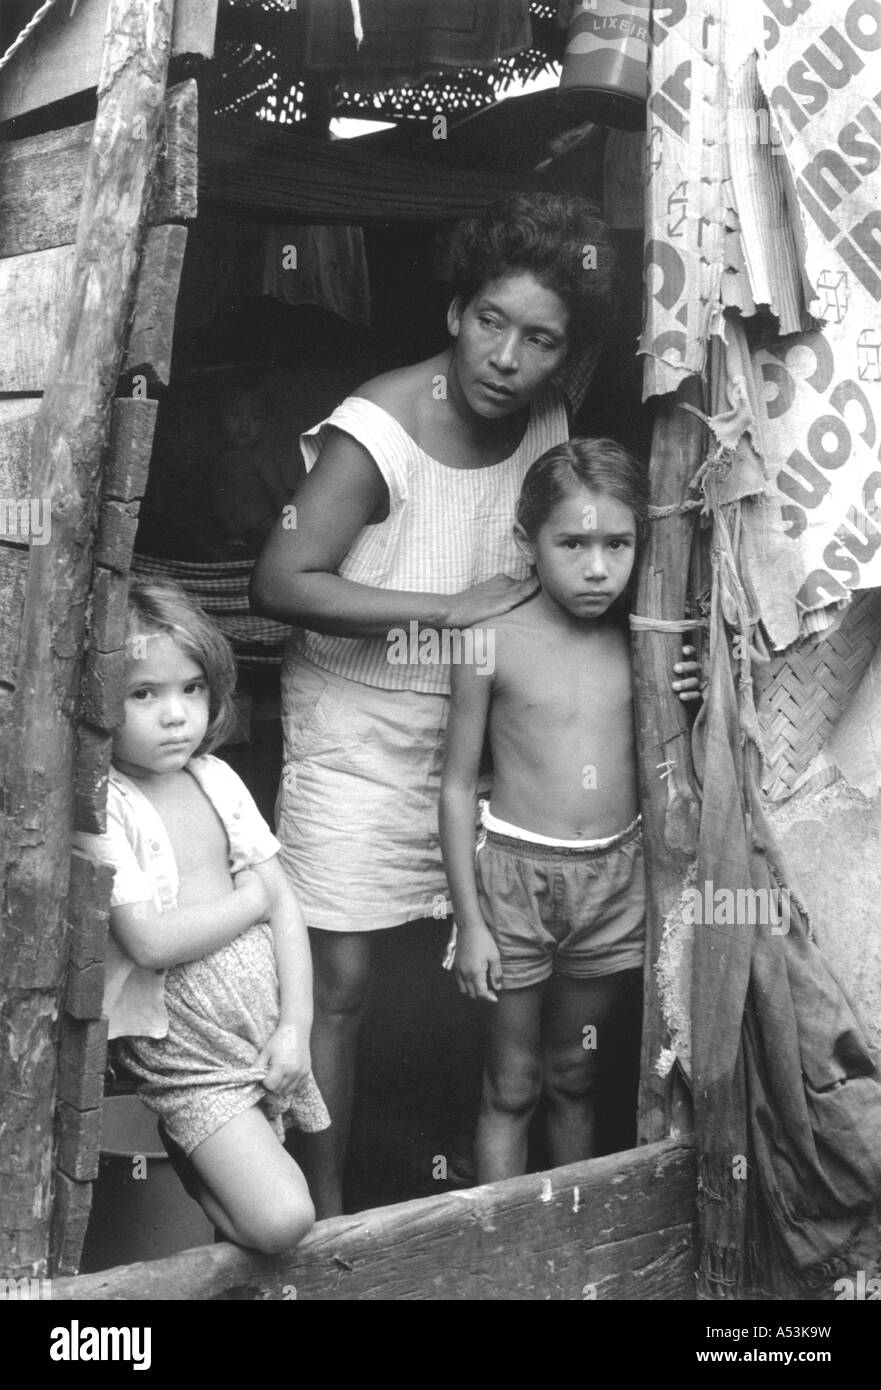 Painet ha1229 tunisia poverty shack country developing nation less economically developed culture emerging market Stock Photo